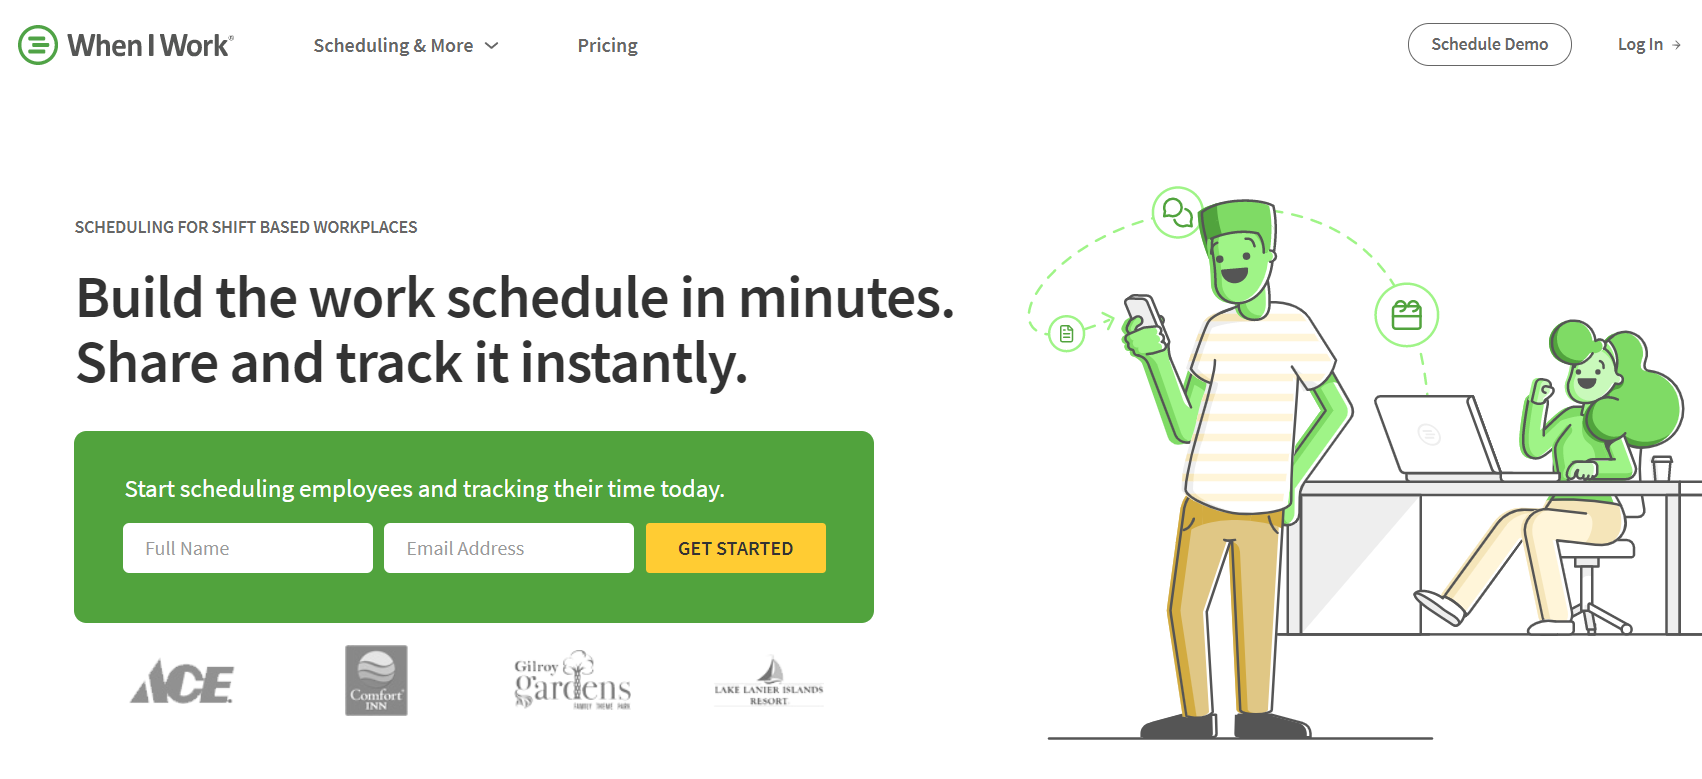 Notable features of When I Work time tracking app